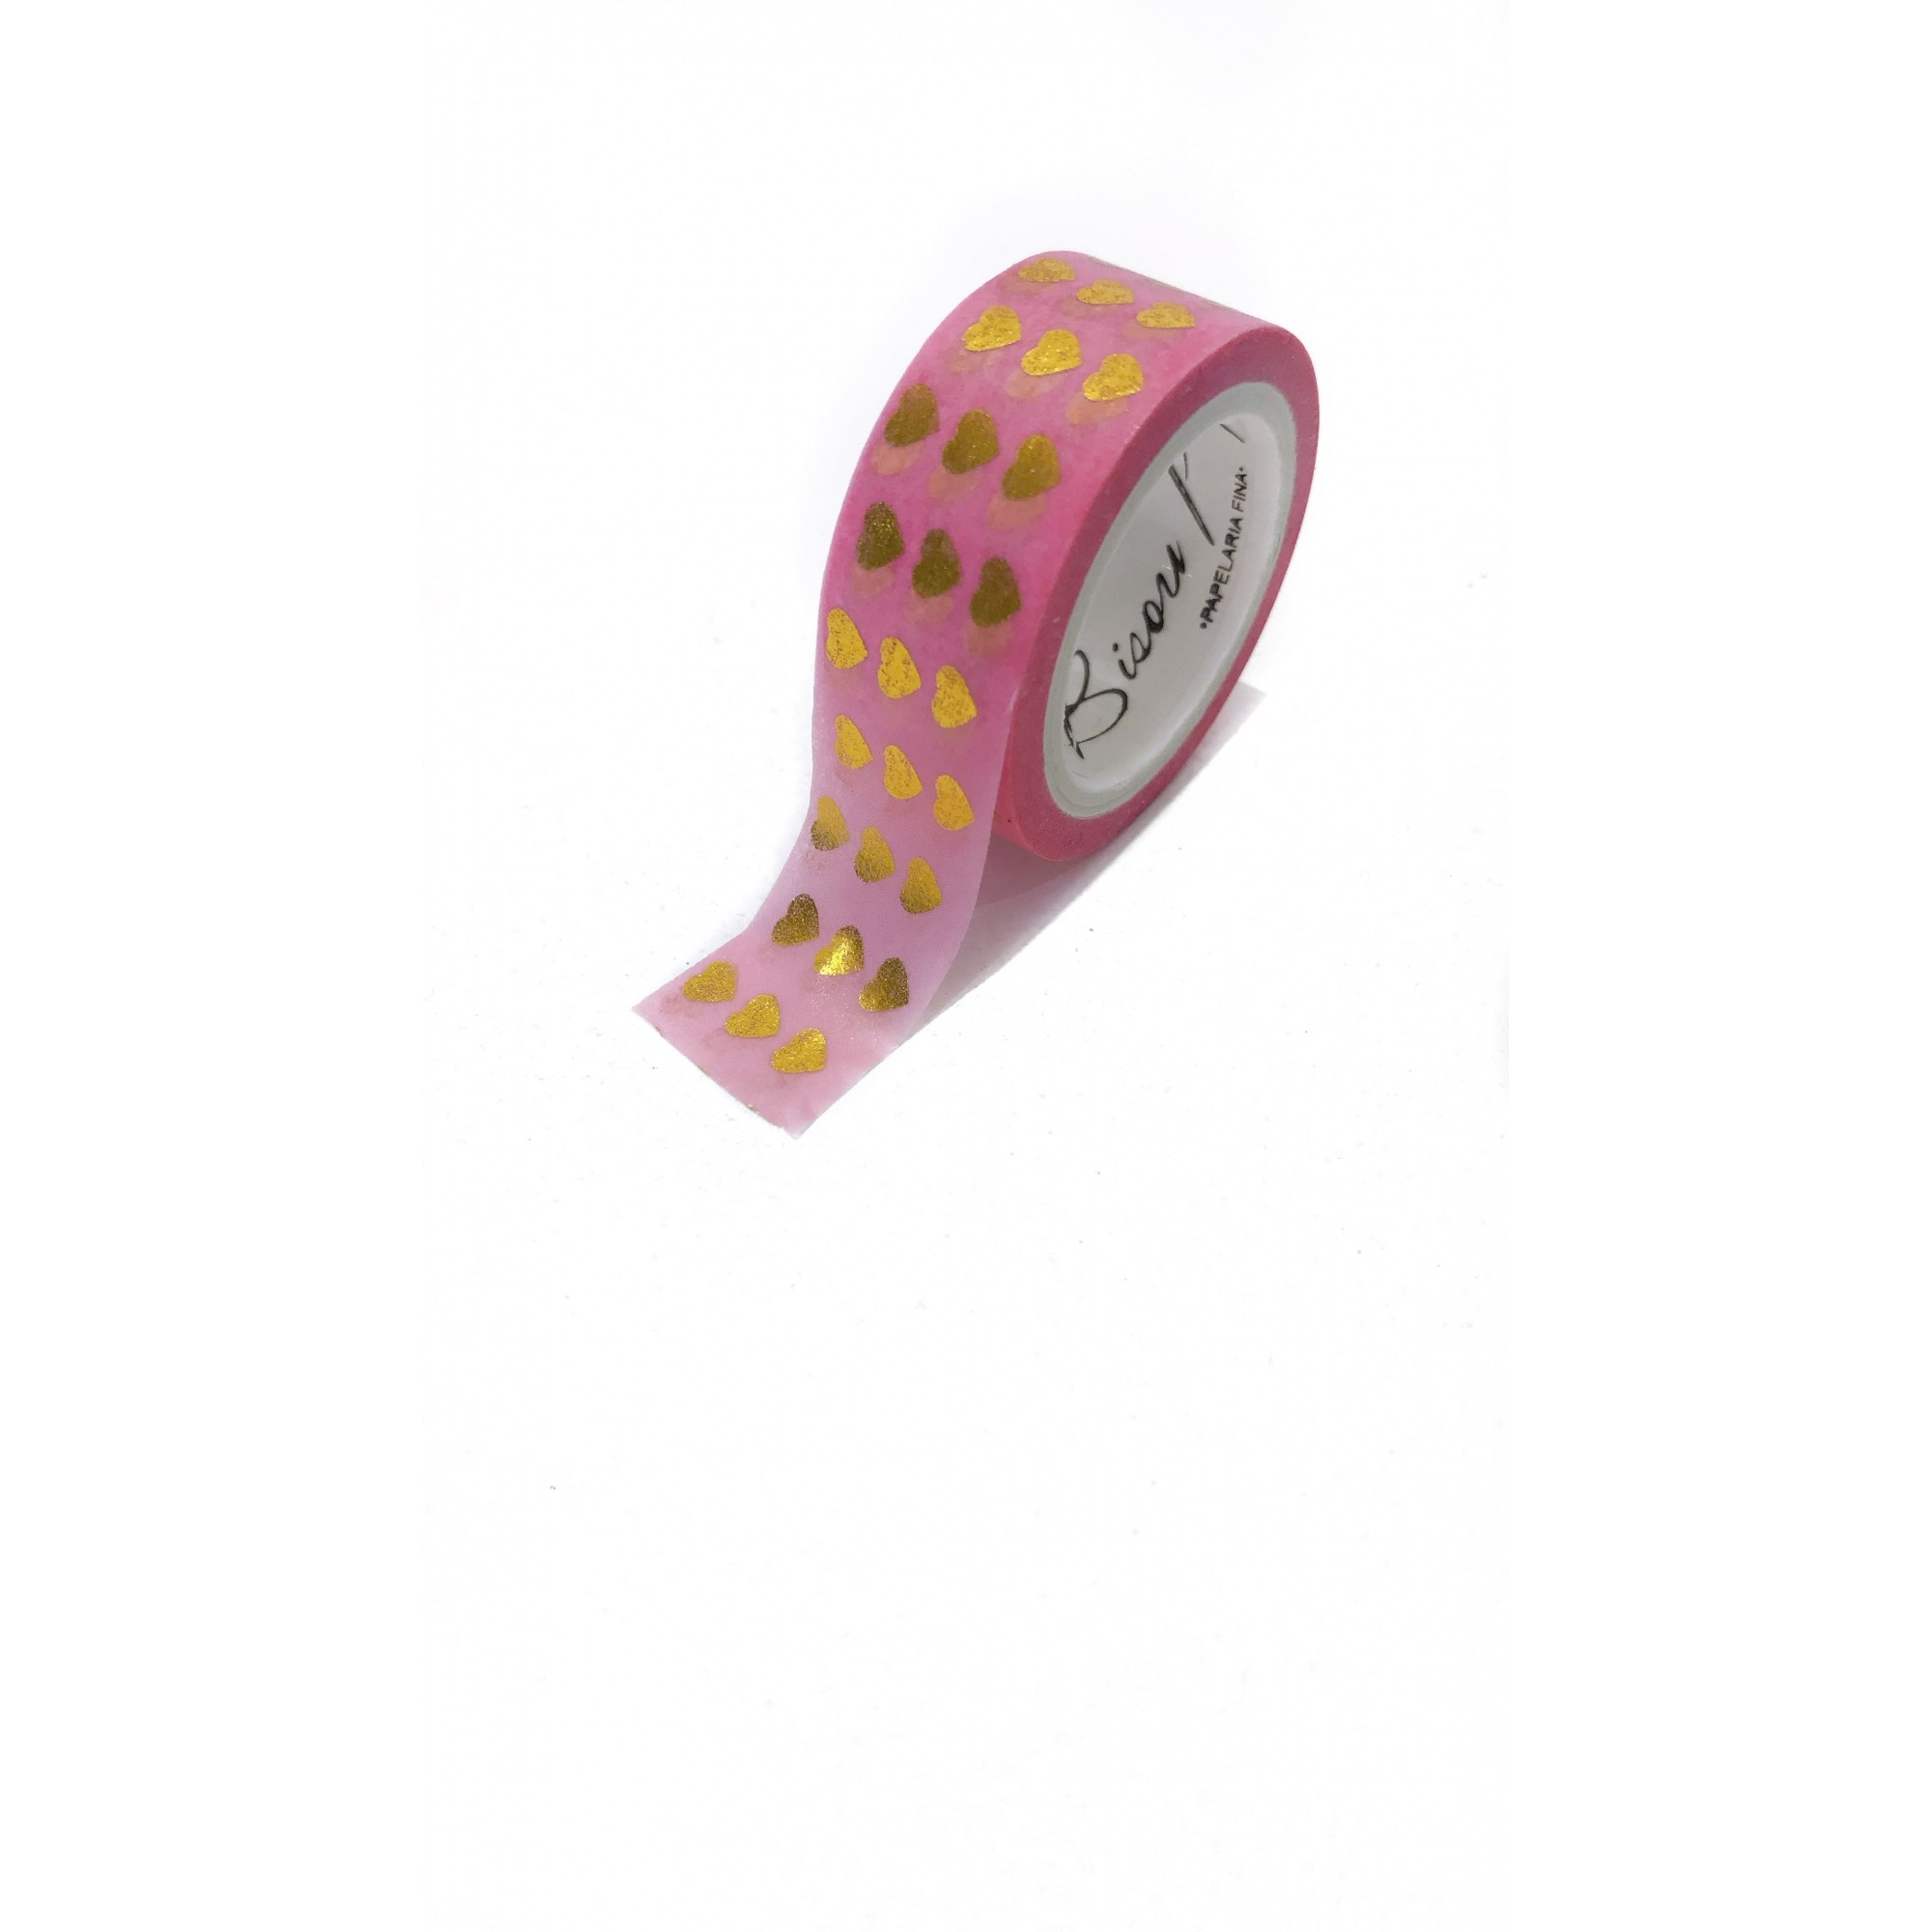 Washi tape - pink heart